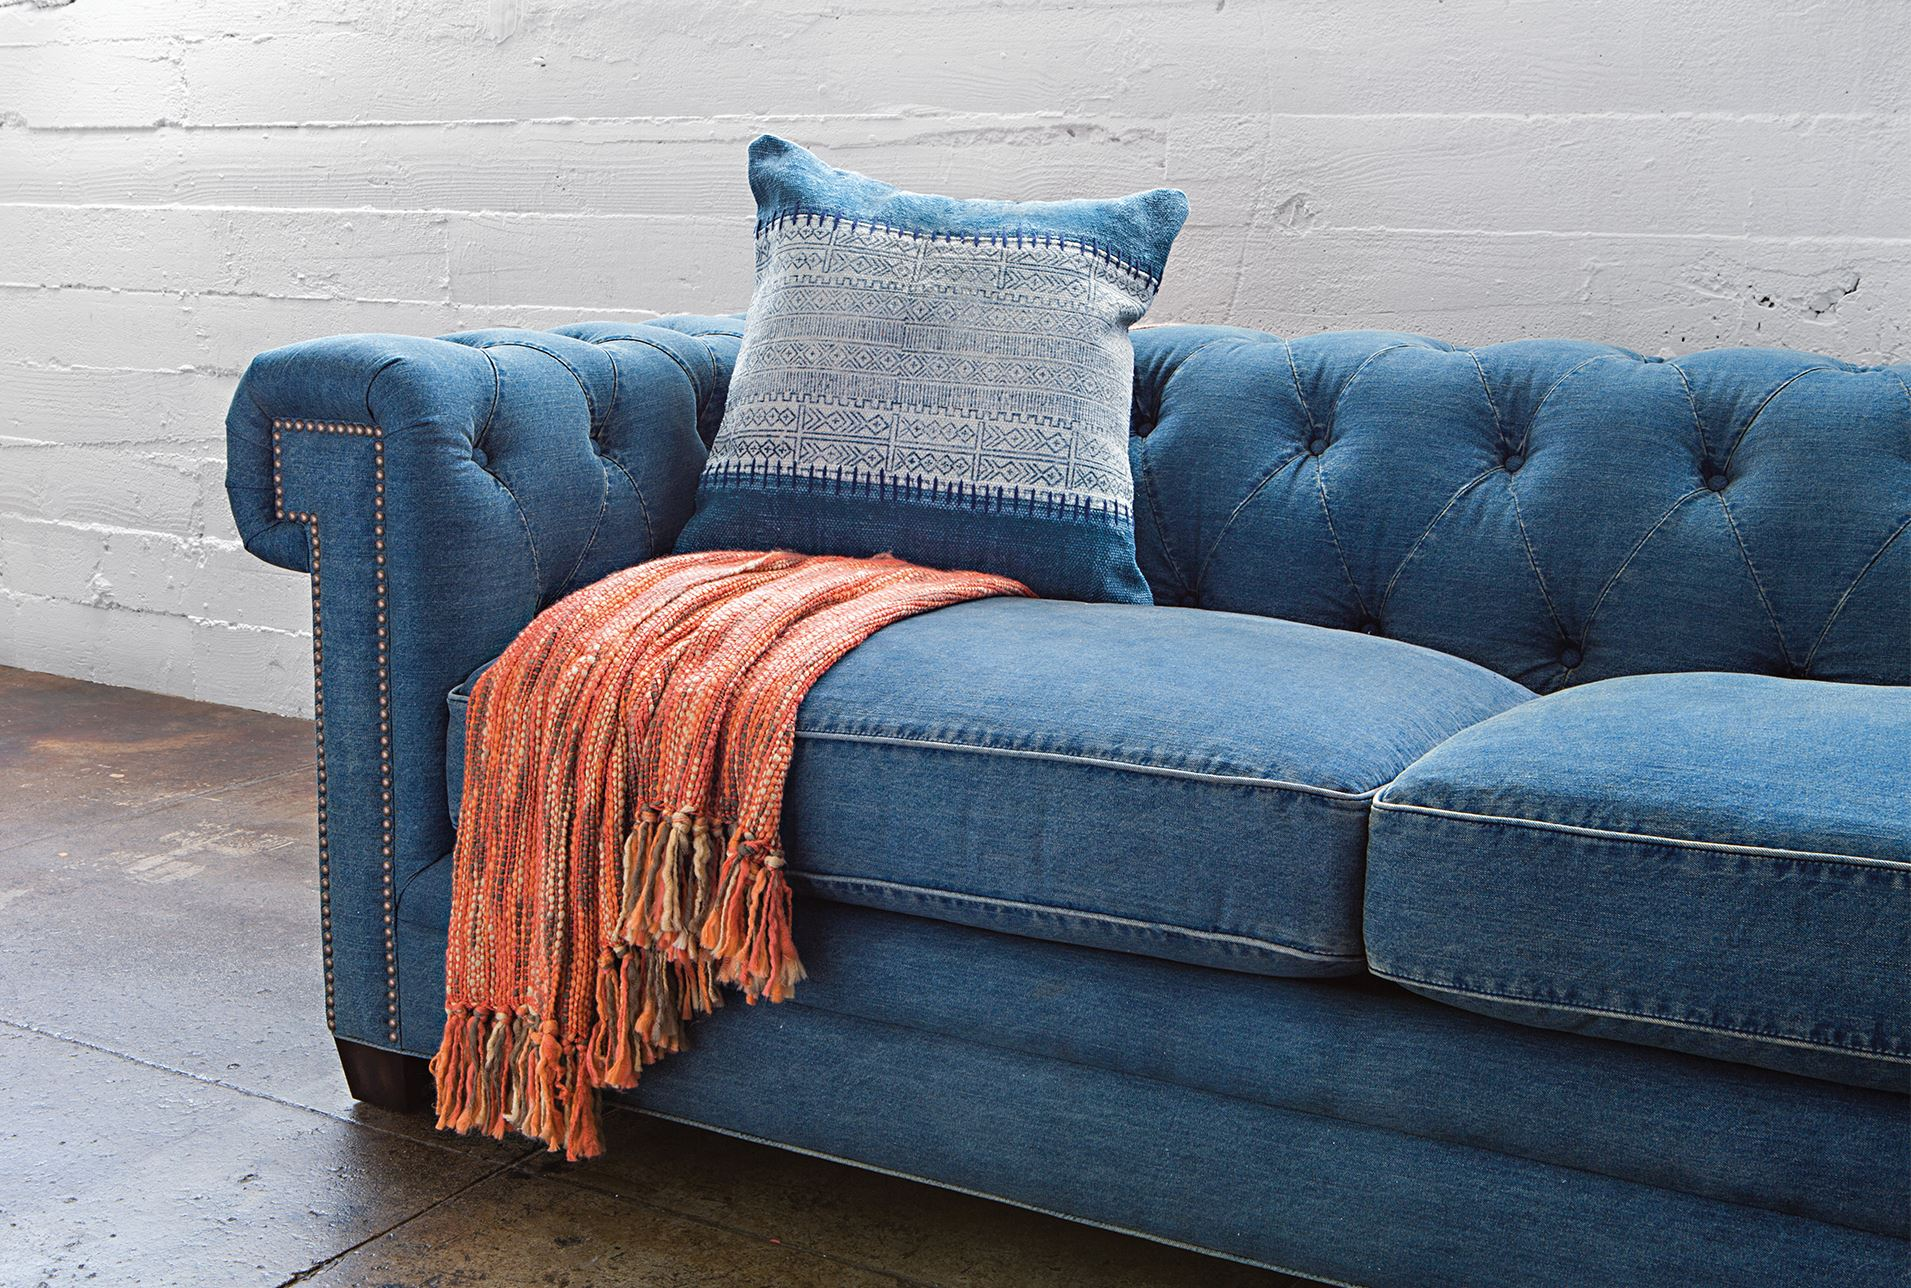 denim living room furniture best neutral paint colors for uk tufted sofa spaces 360 elements